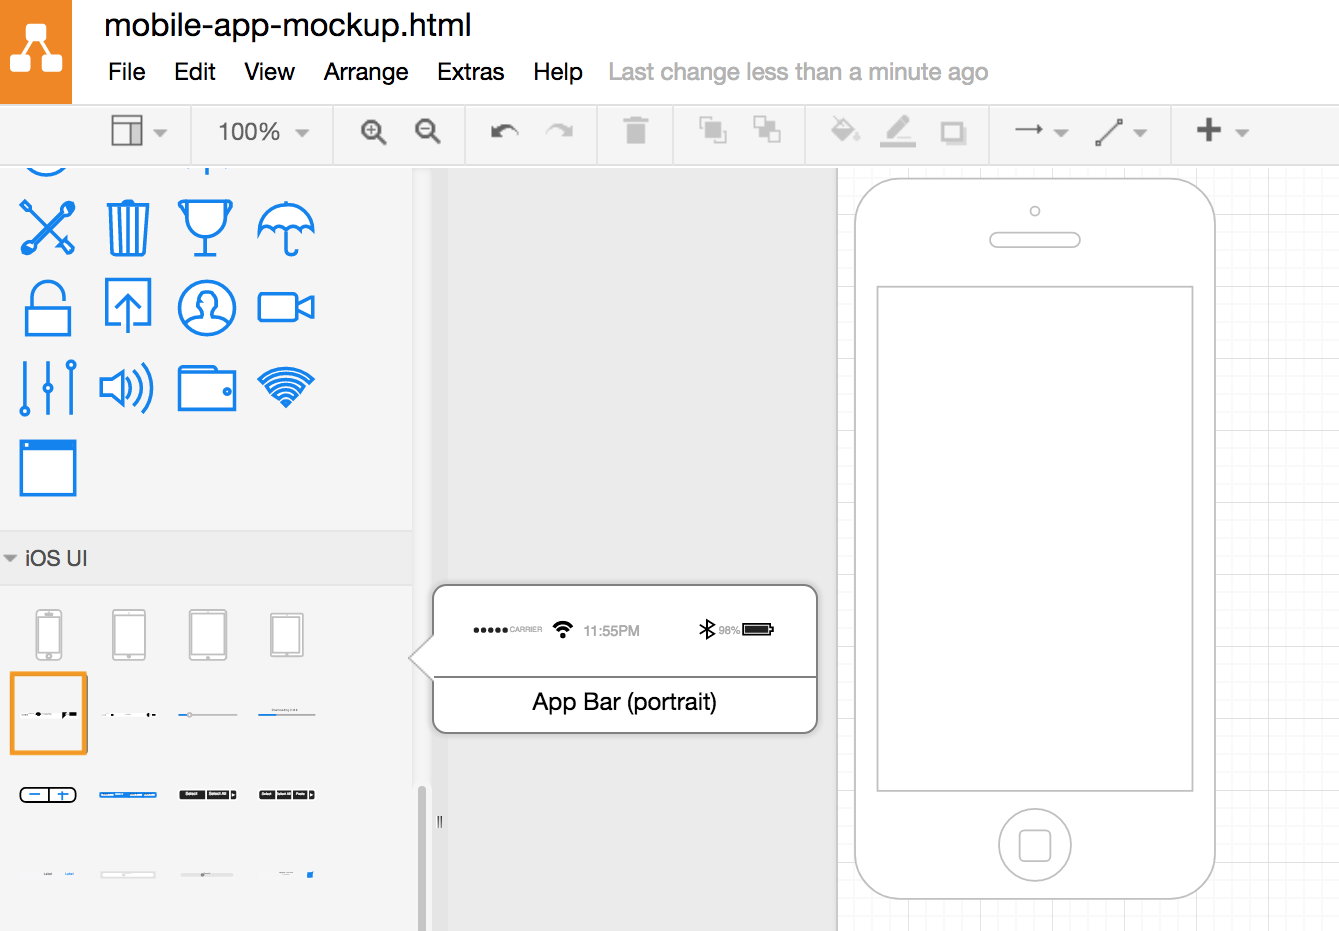 draw.io - add the app bar to the iPhone outline